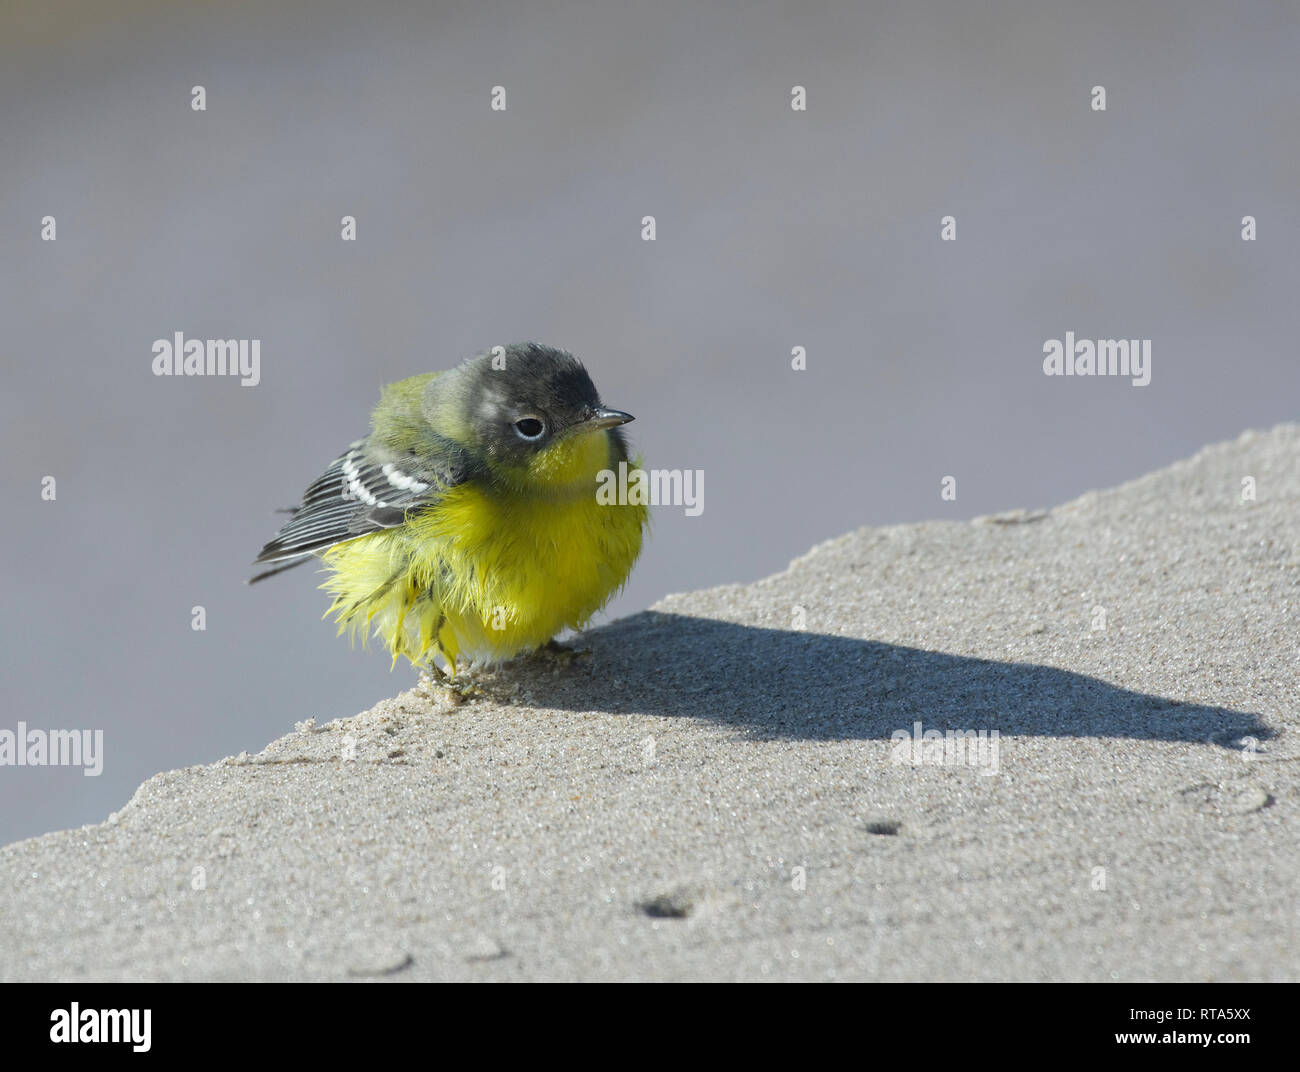 Lesser Goldfinch, Spinus psaltria on Lake Michigan beach, not native to area may have blown in with storm. - Stock Image